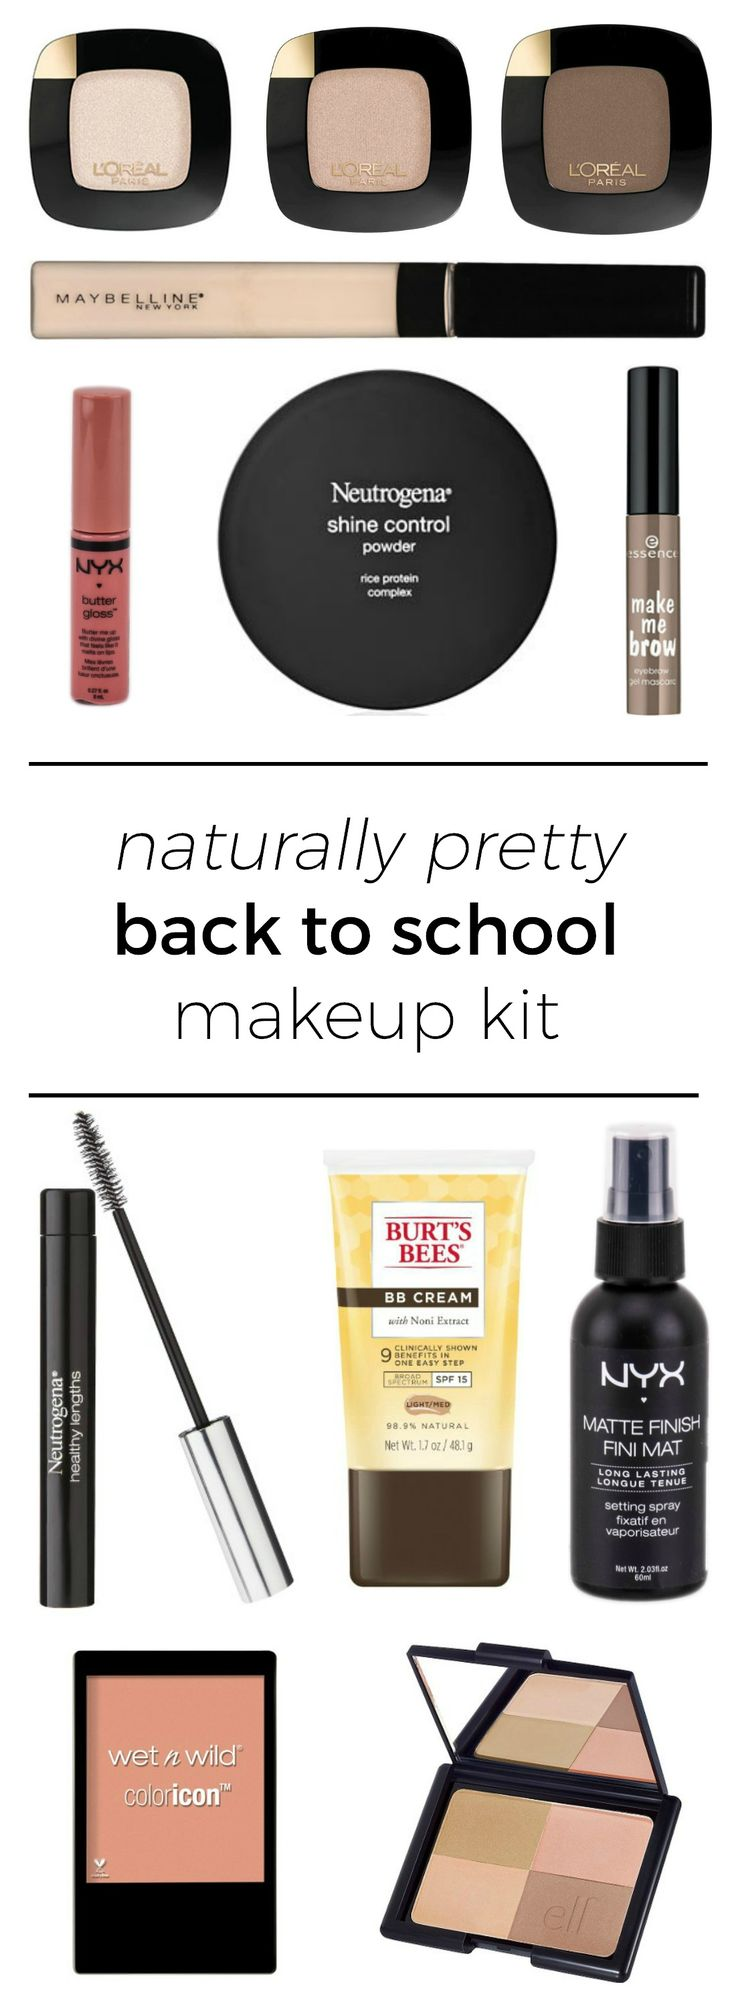 The perfect back to school makeup kit featuring affordable drugstore makeup + the best makeup brushes under $10 | by beauty blogger Ashley Brooke Nicholas